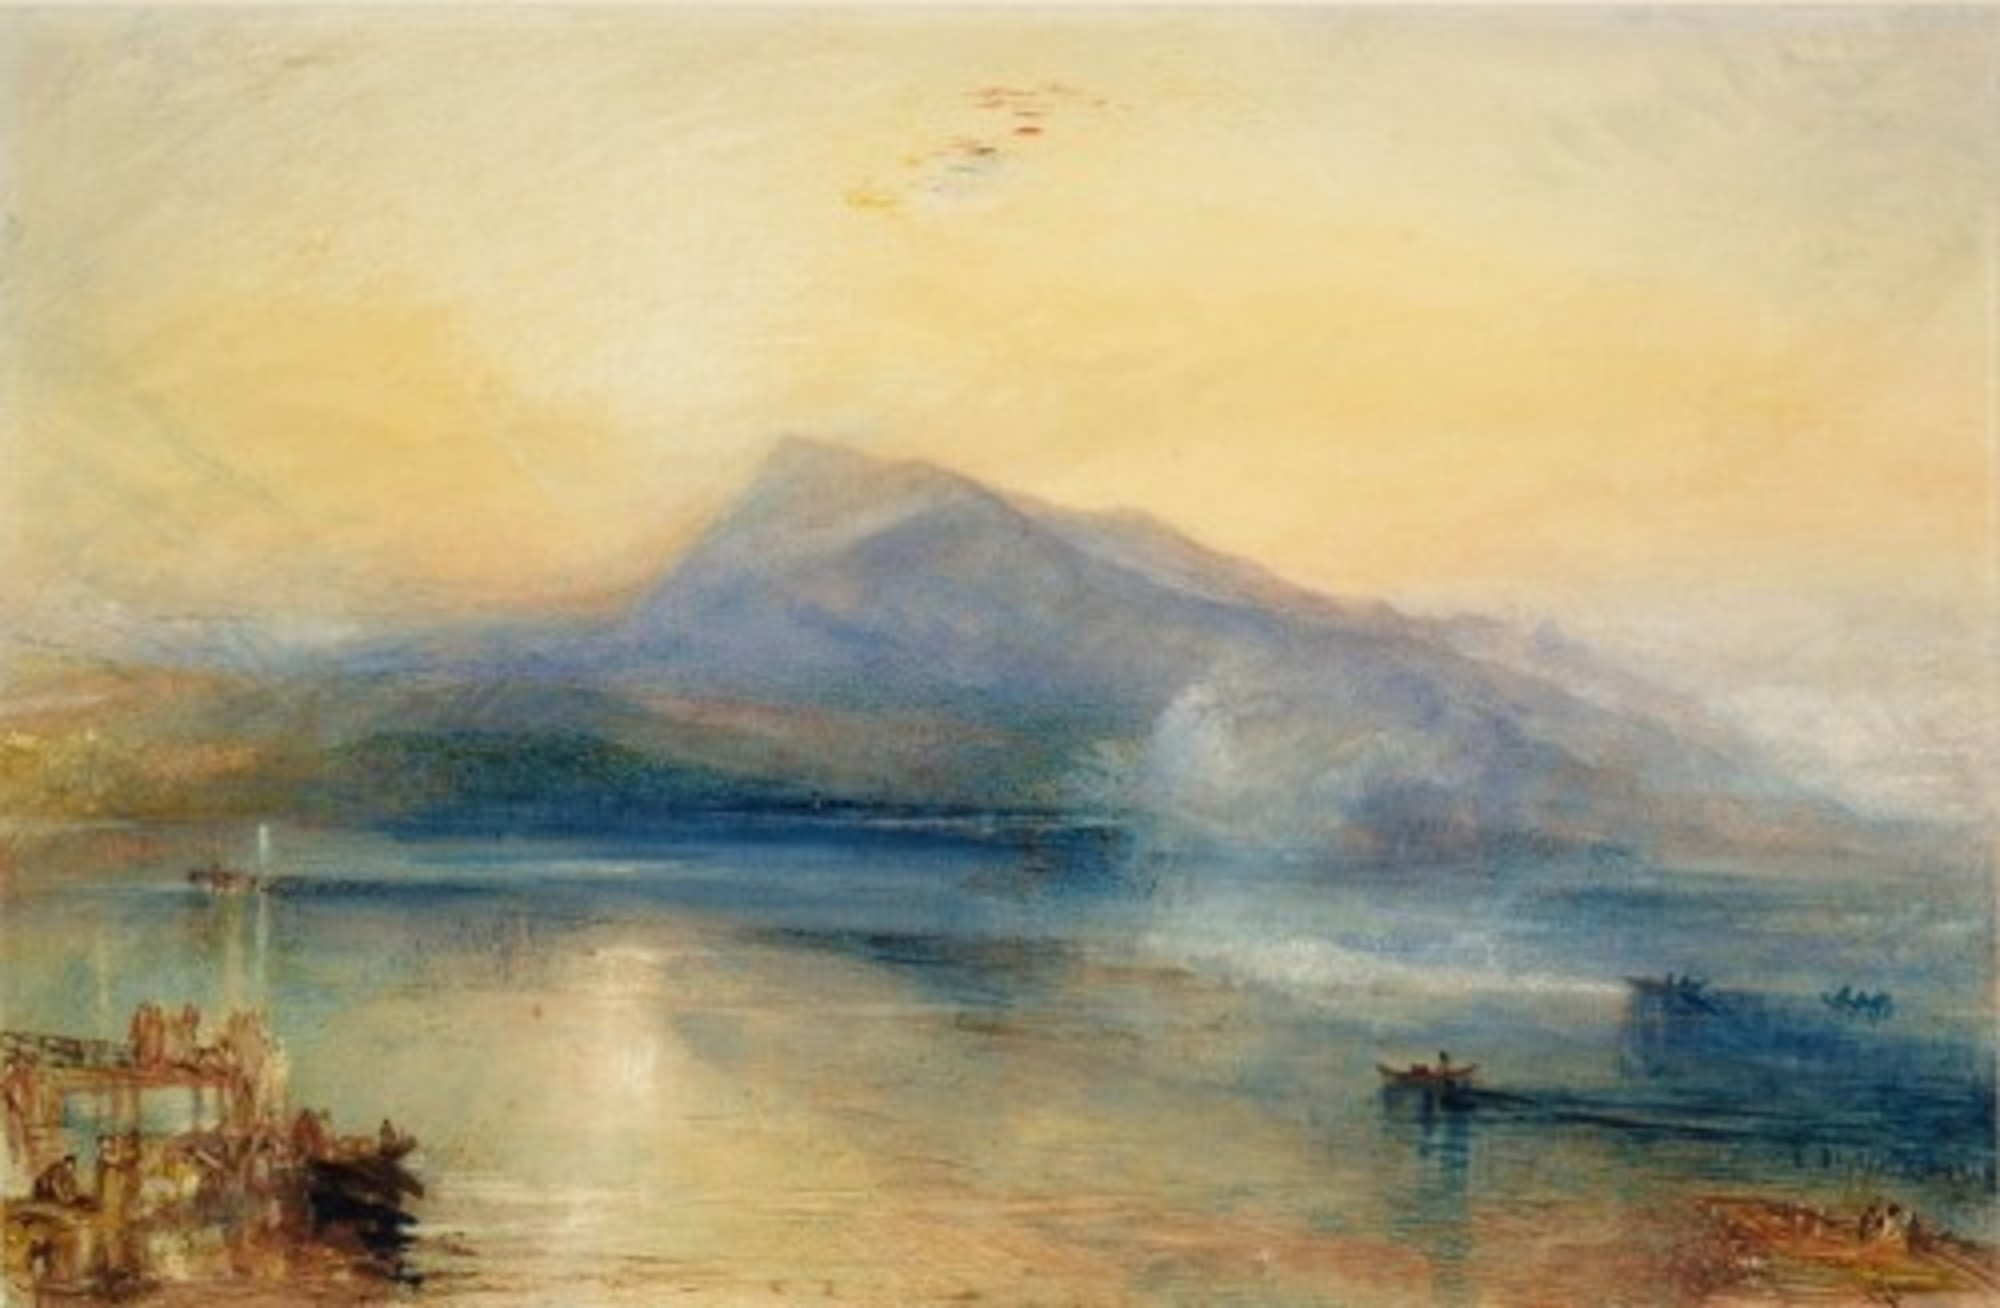 The_Dark_Rigi_the_Lake_of_Lucerne_Showing_the_Rigi_at_Sinrise_by_Turner.jpg